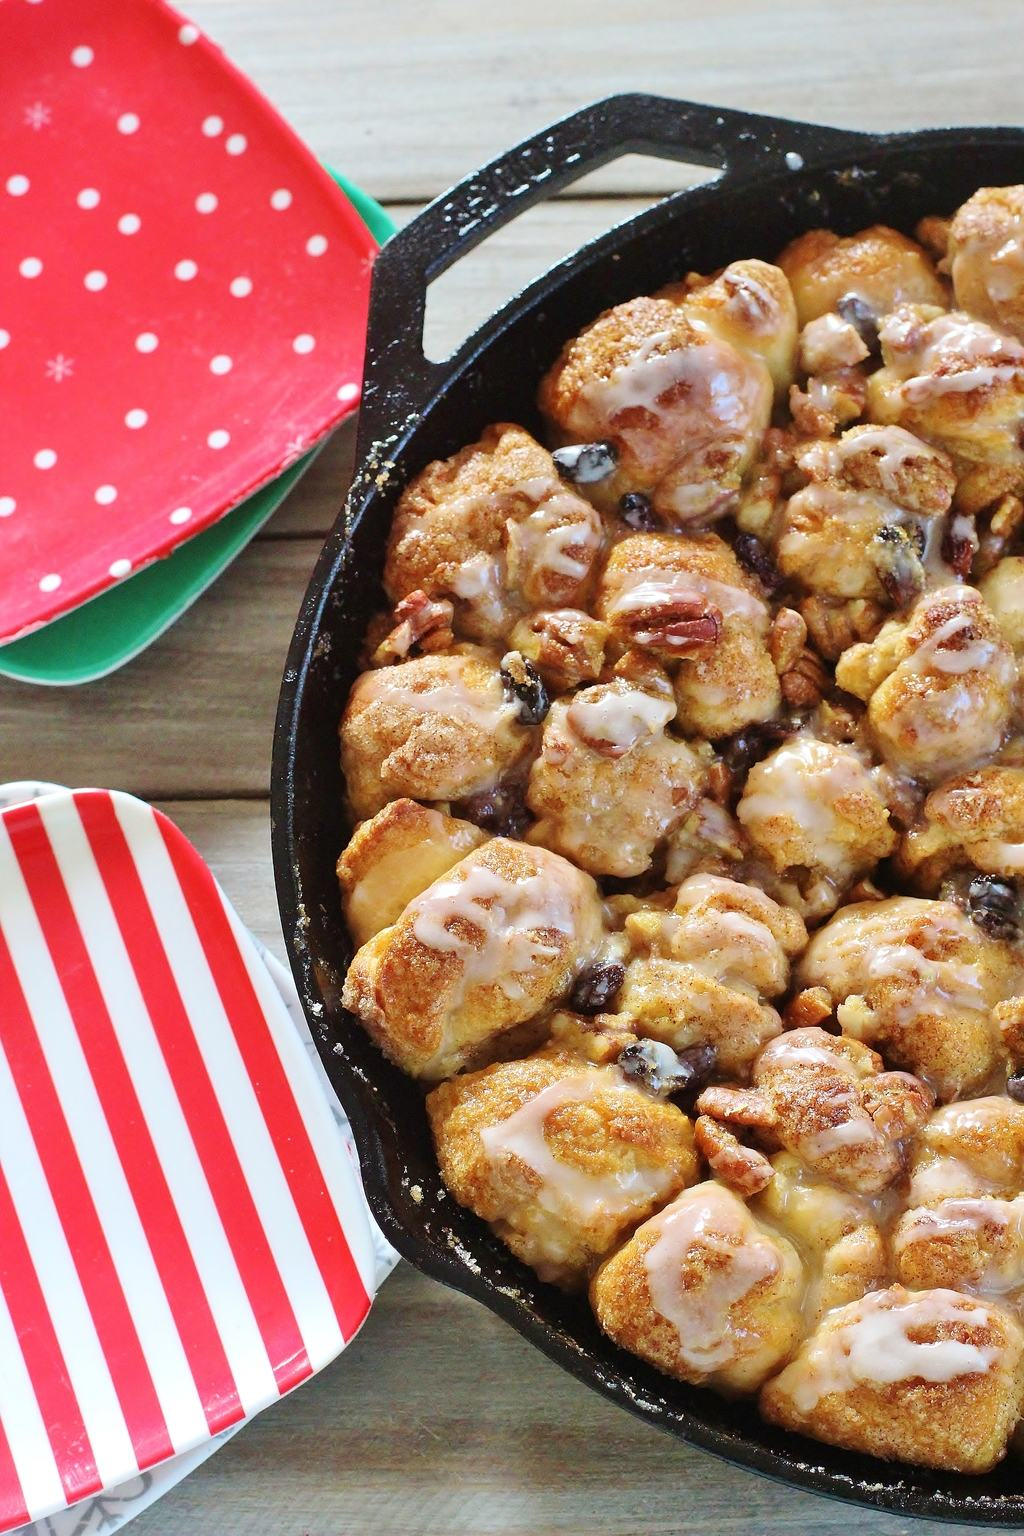 Skillet Monkey Bread is an inside out version of cinnamon rolls suitable for a special breakfast, brunch or Tuesday morning. You can't go wrong with anything that has both a caramel-y topping and a buttermilk glaze. Prep the night before and save baking for the morning. #syrupandbiscuits #castironskillet #breakfast